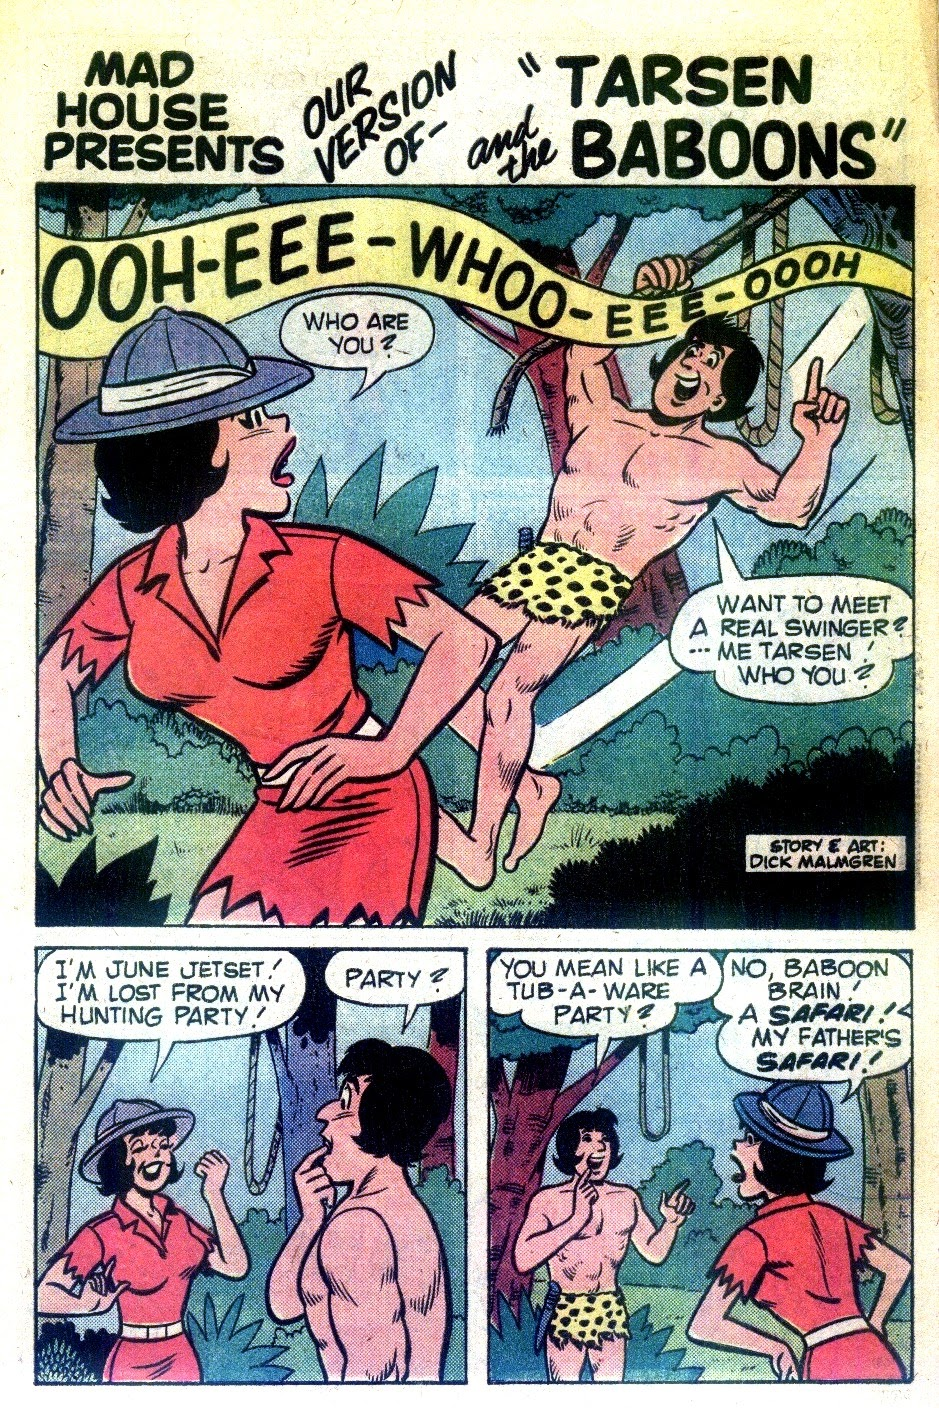 Read online Madhouse Comics comic -  Issue #126 - 29